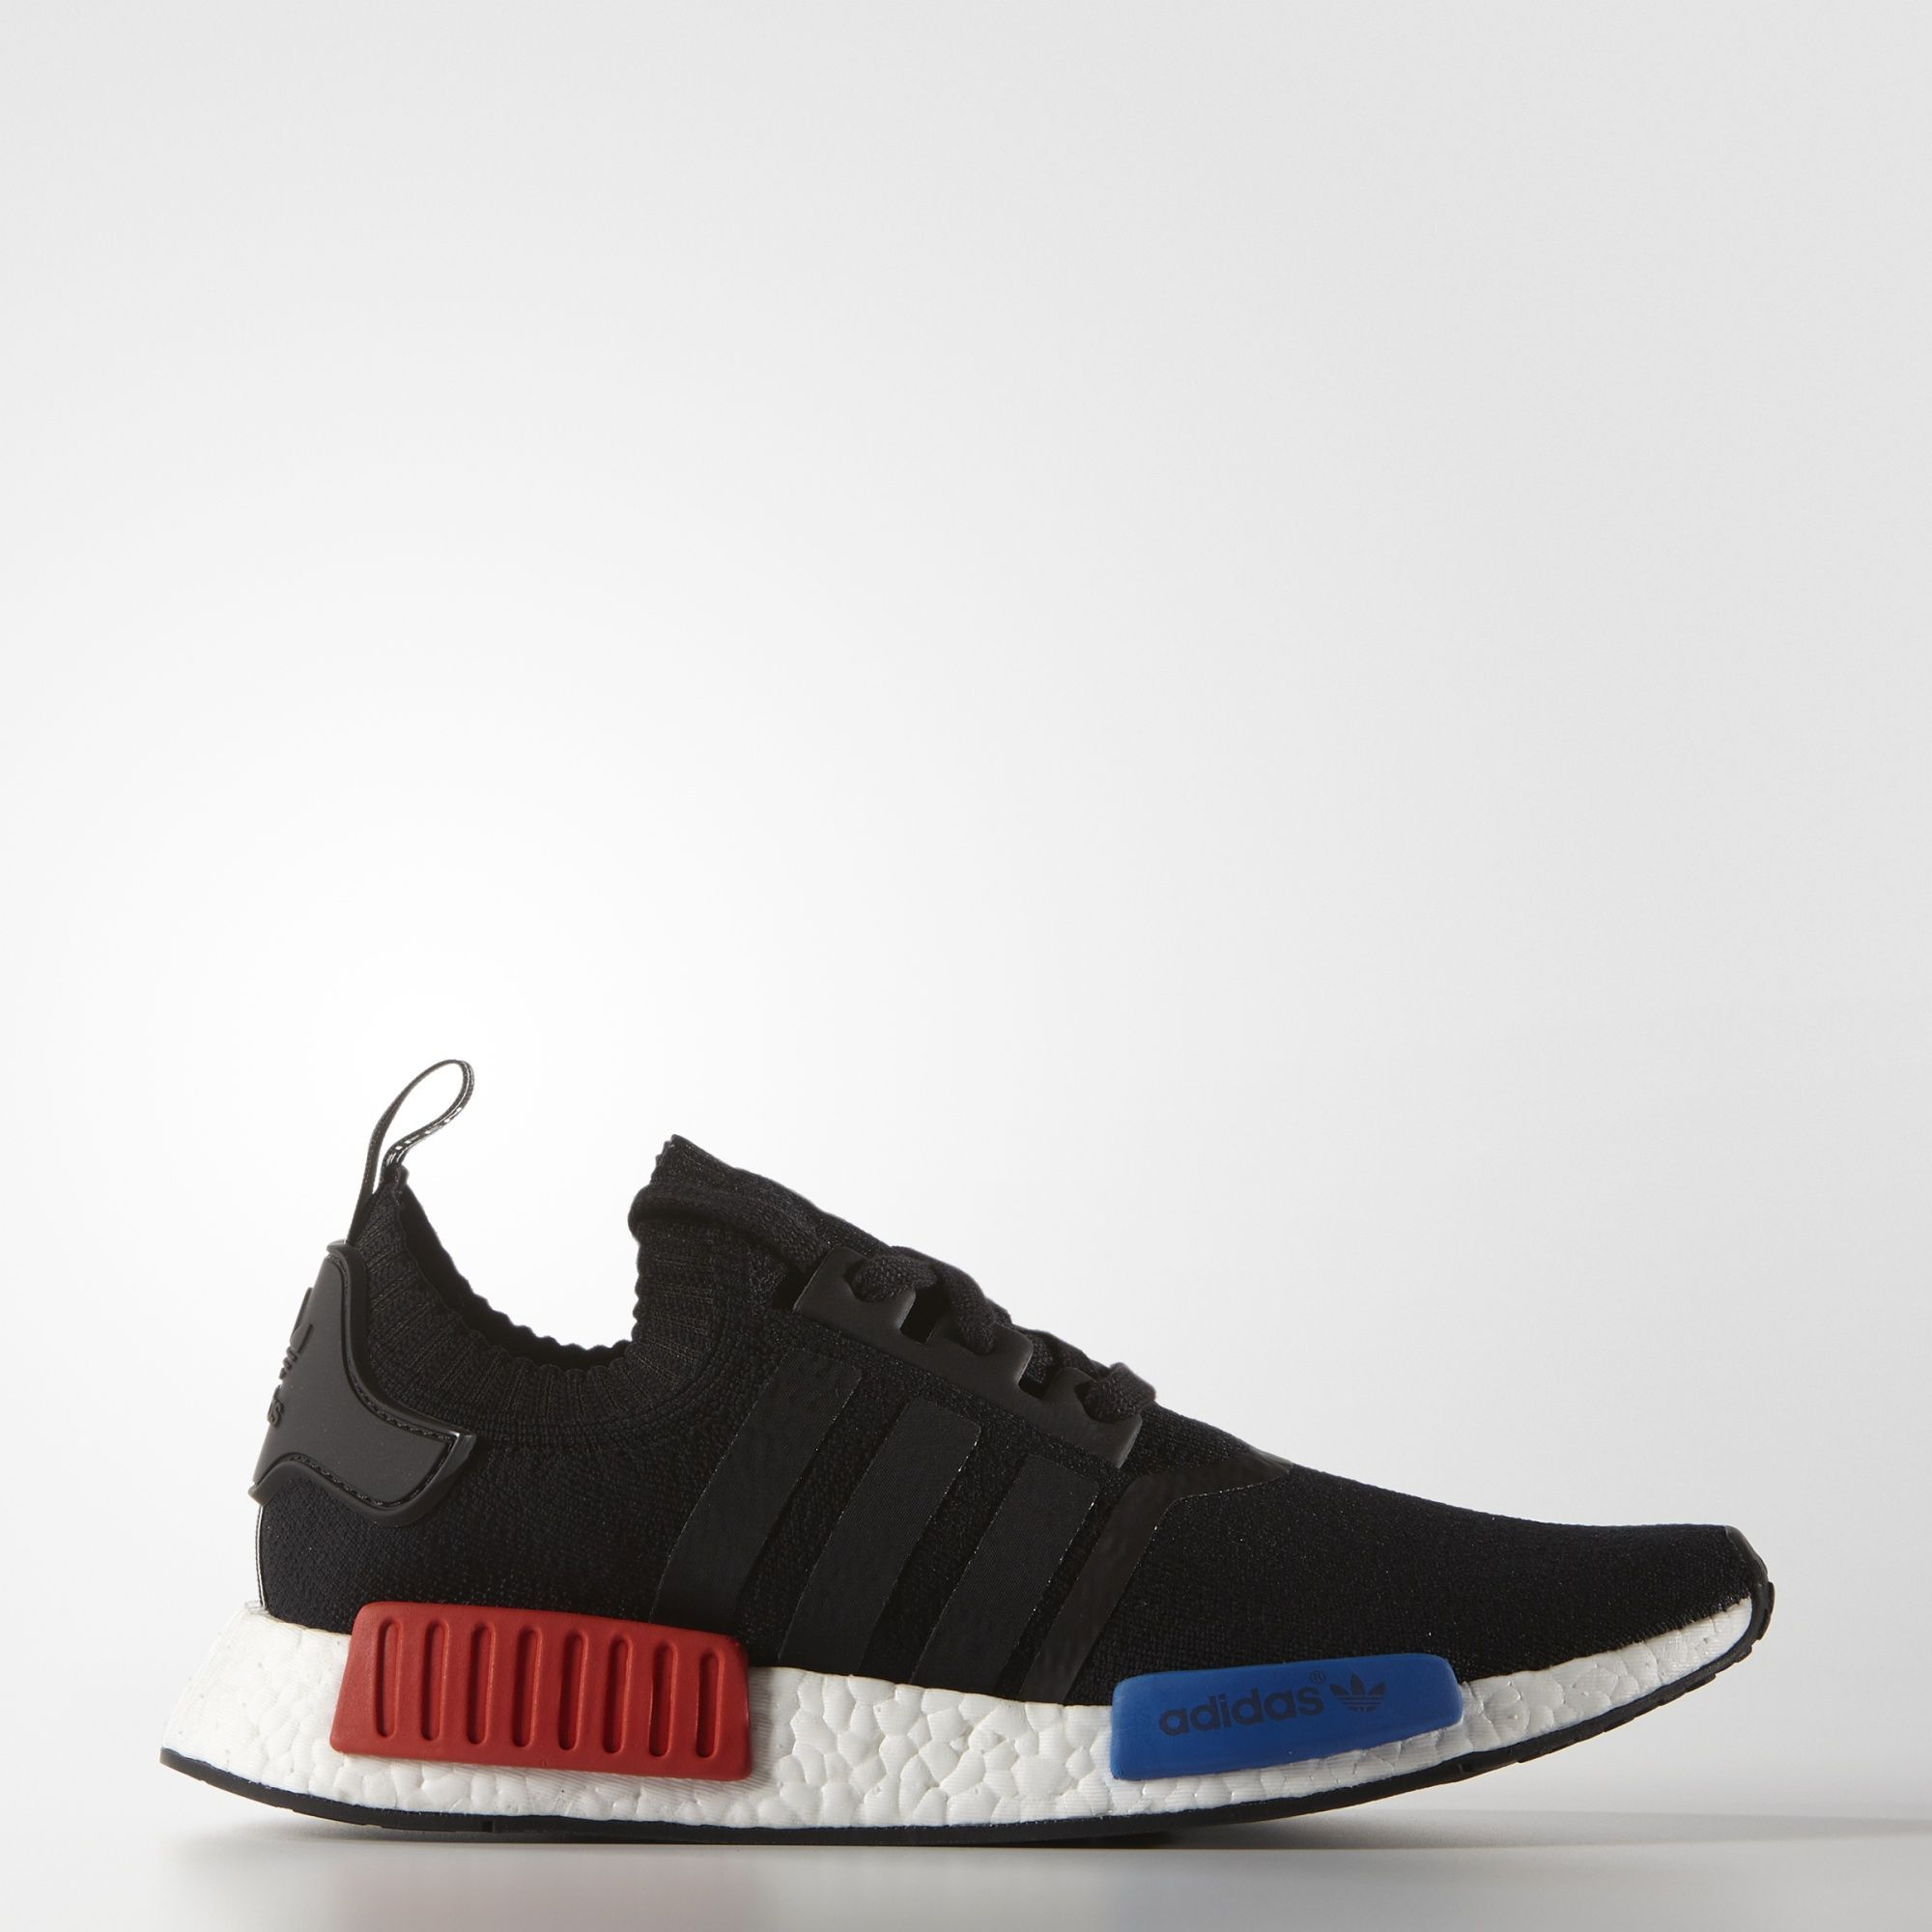 c4698a9959f97 adidas - Tenis NMD Runner Primeknit